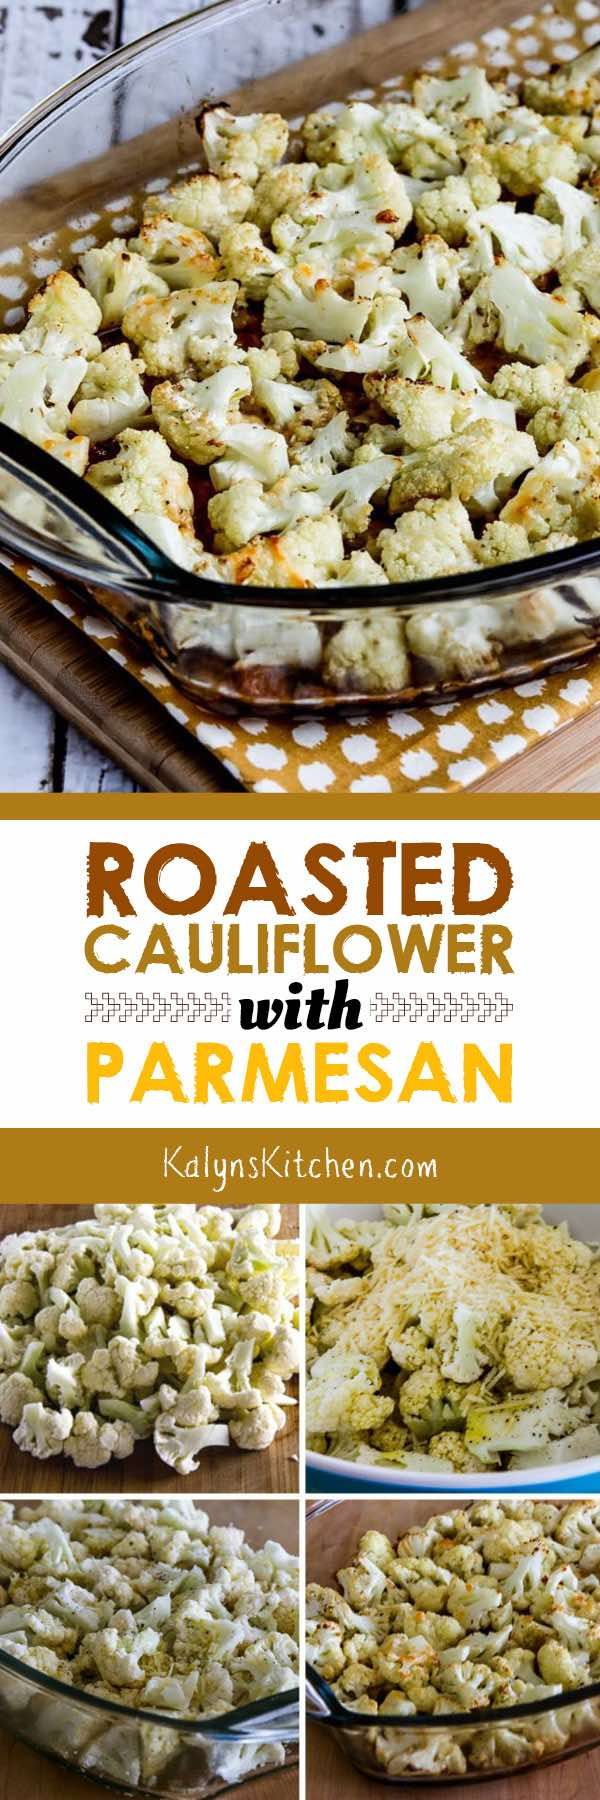 Roasted Cauliflower with Parmesan is a complete WOW with this new-and-improved method; this is a must try! And of course low-carb roasted cauliflower is also gluten-free, Keto, and low-glycemic. [found on KalynsKitchen.com]